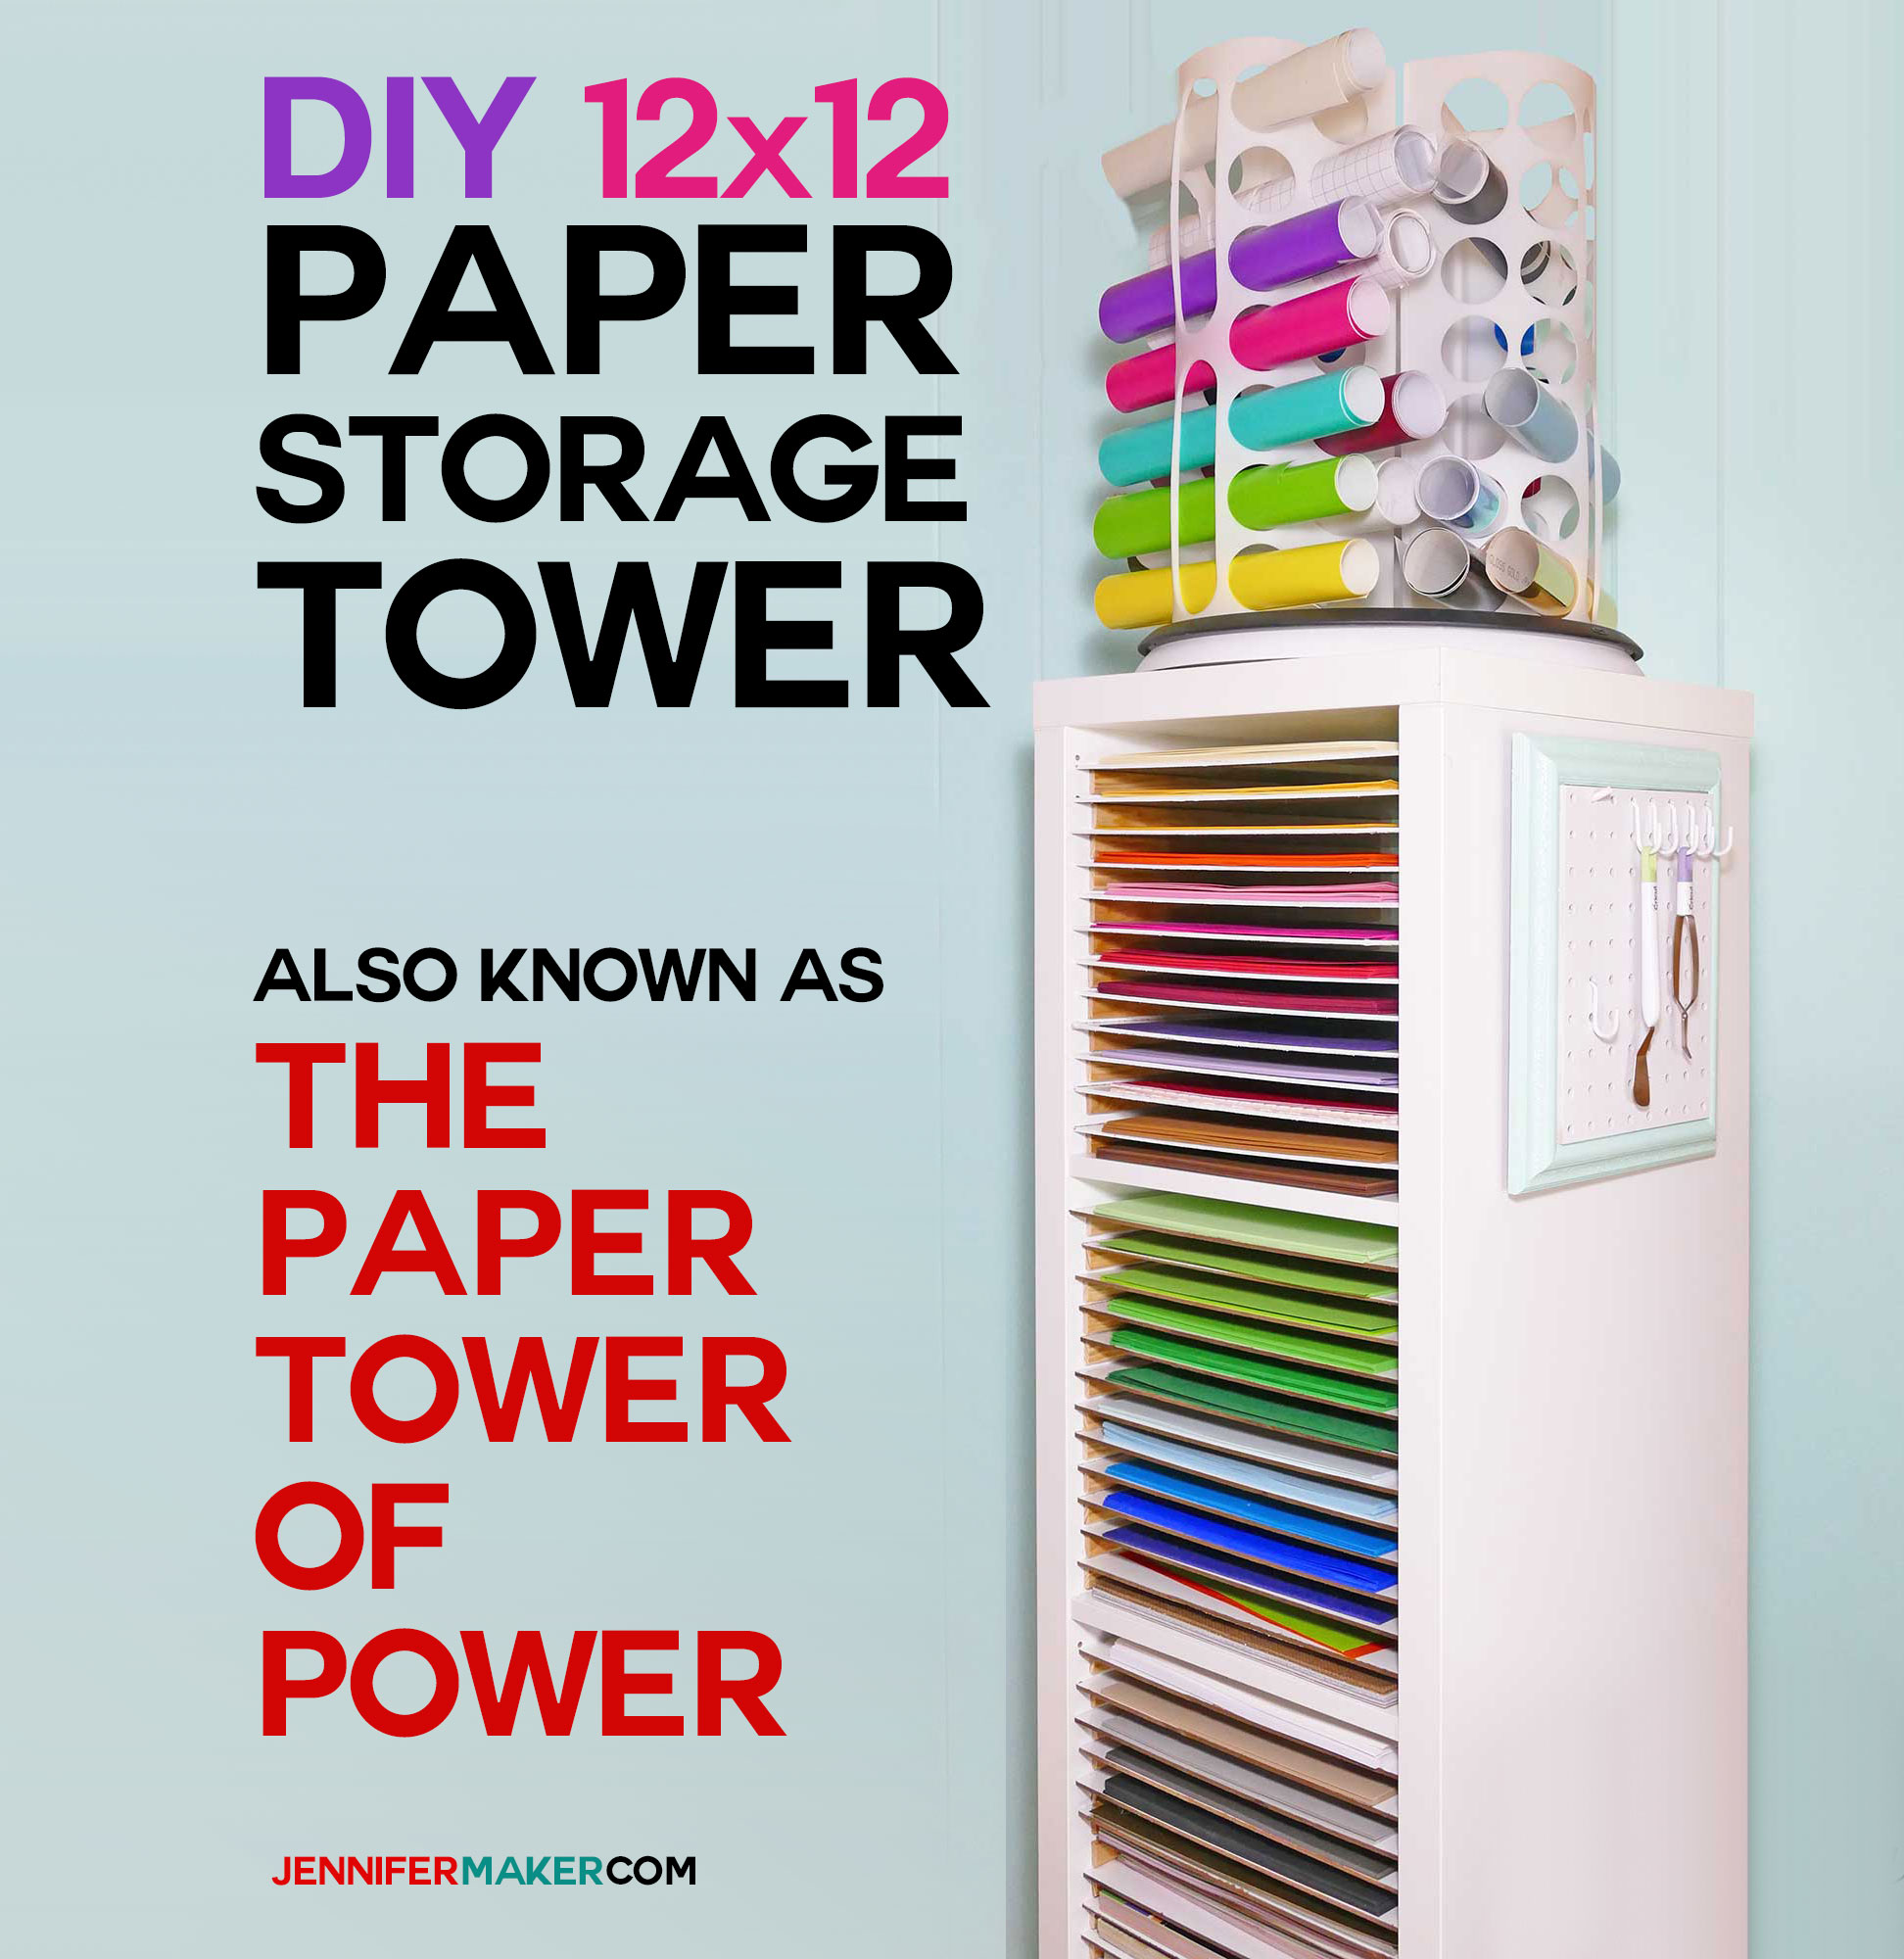 Ikea Box Holder 12x12 Paper Storage Diy Vertical Organizer For Scrapbook Paper